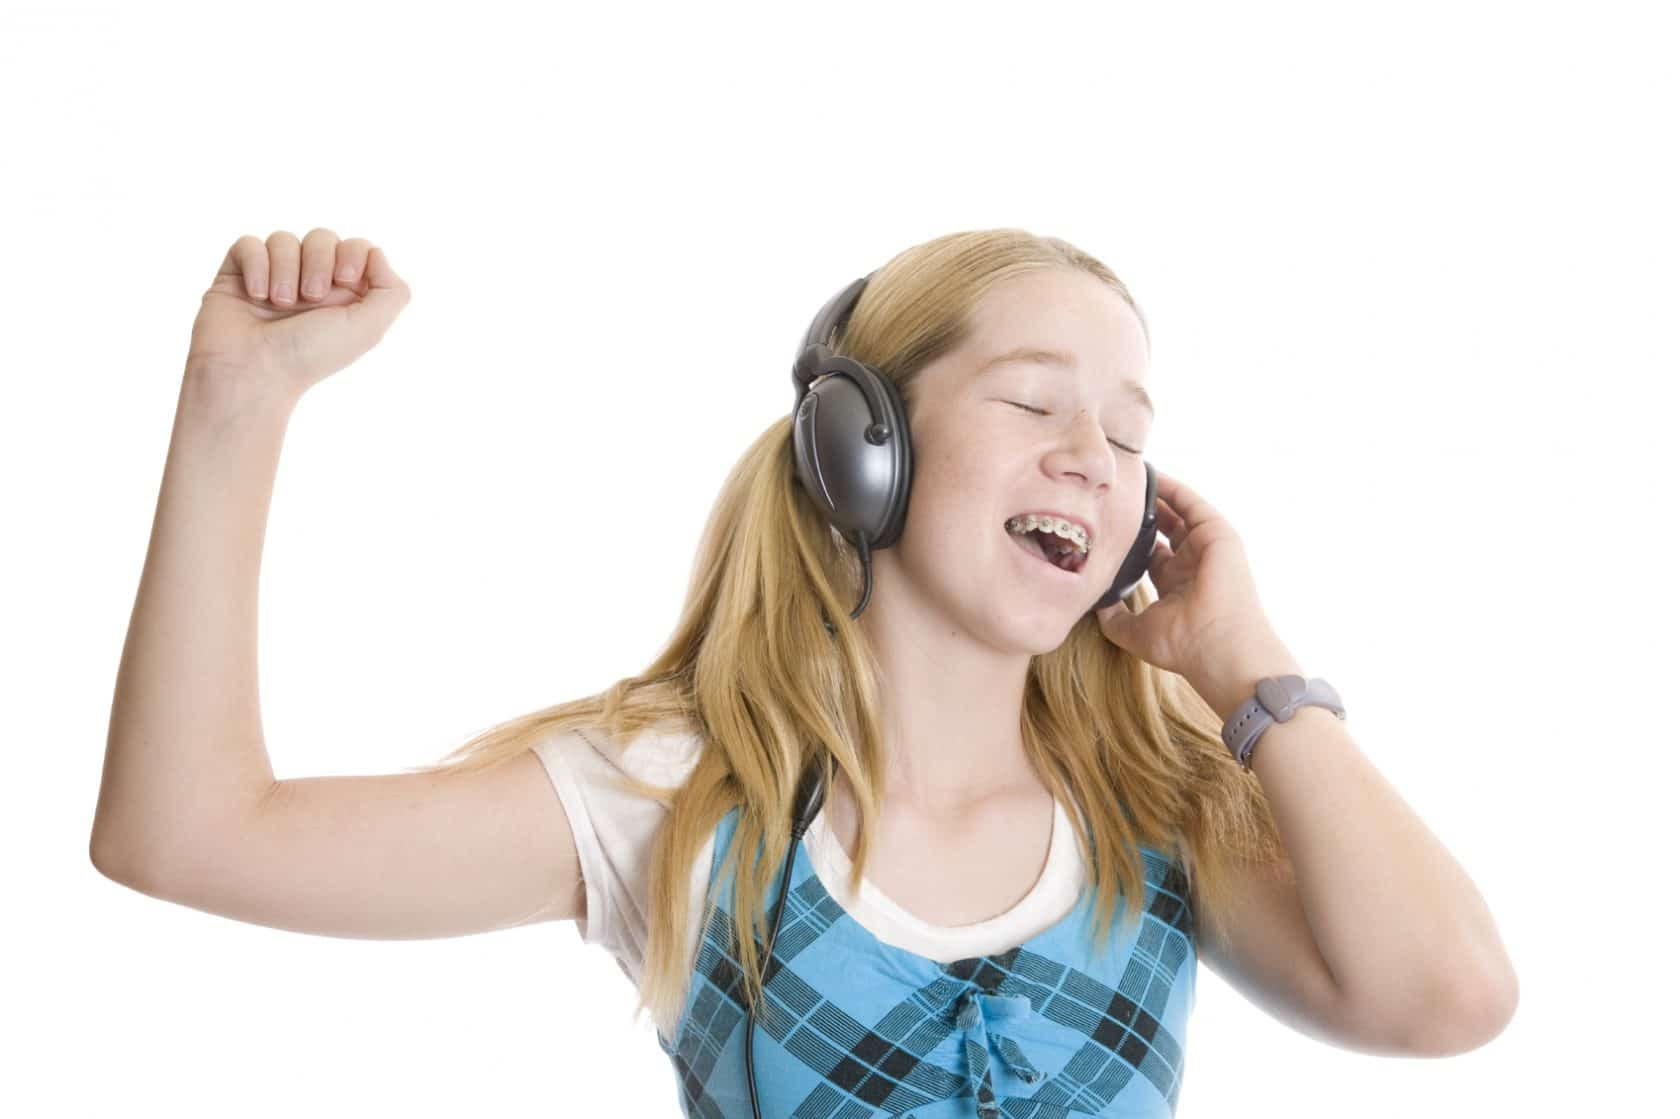 Girls with braces listening to music and singing